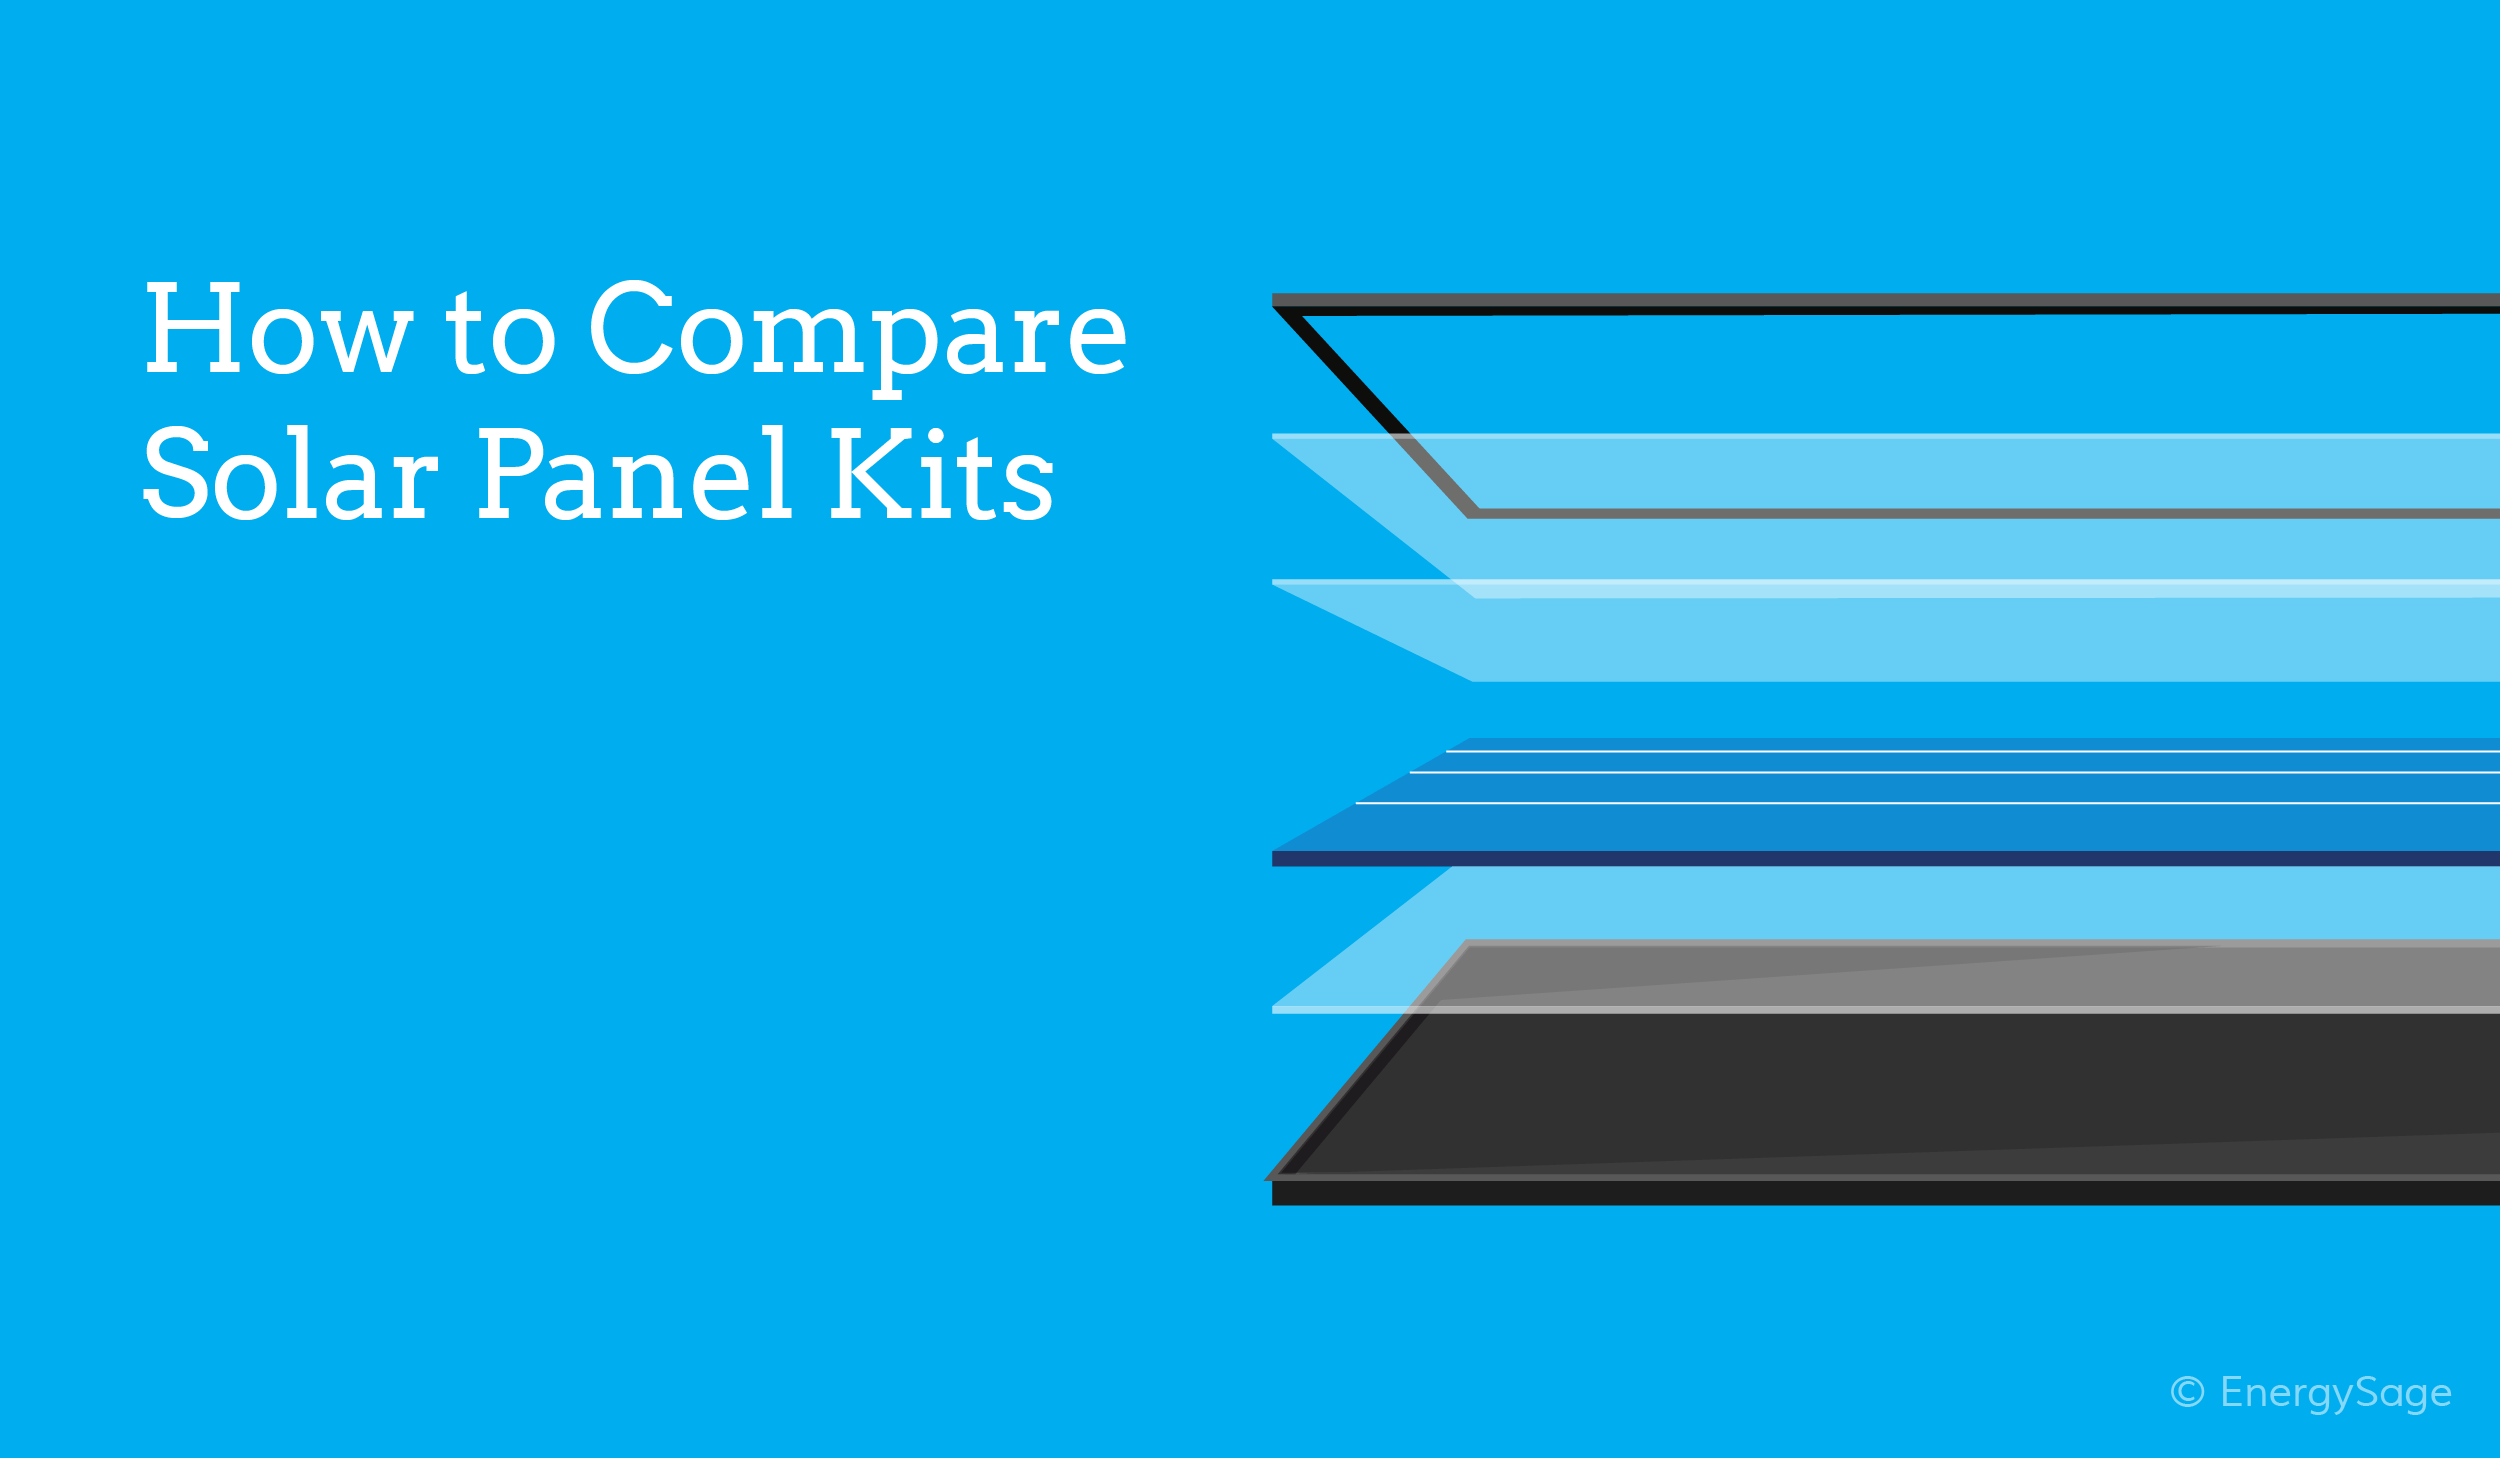 comparing solar panel kits for sale on EnergySage